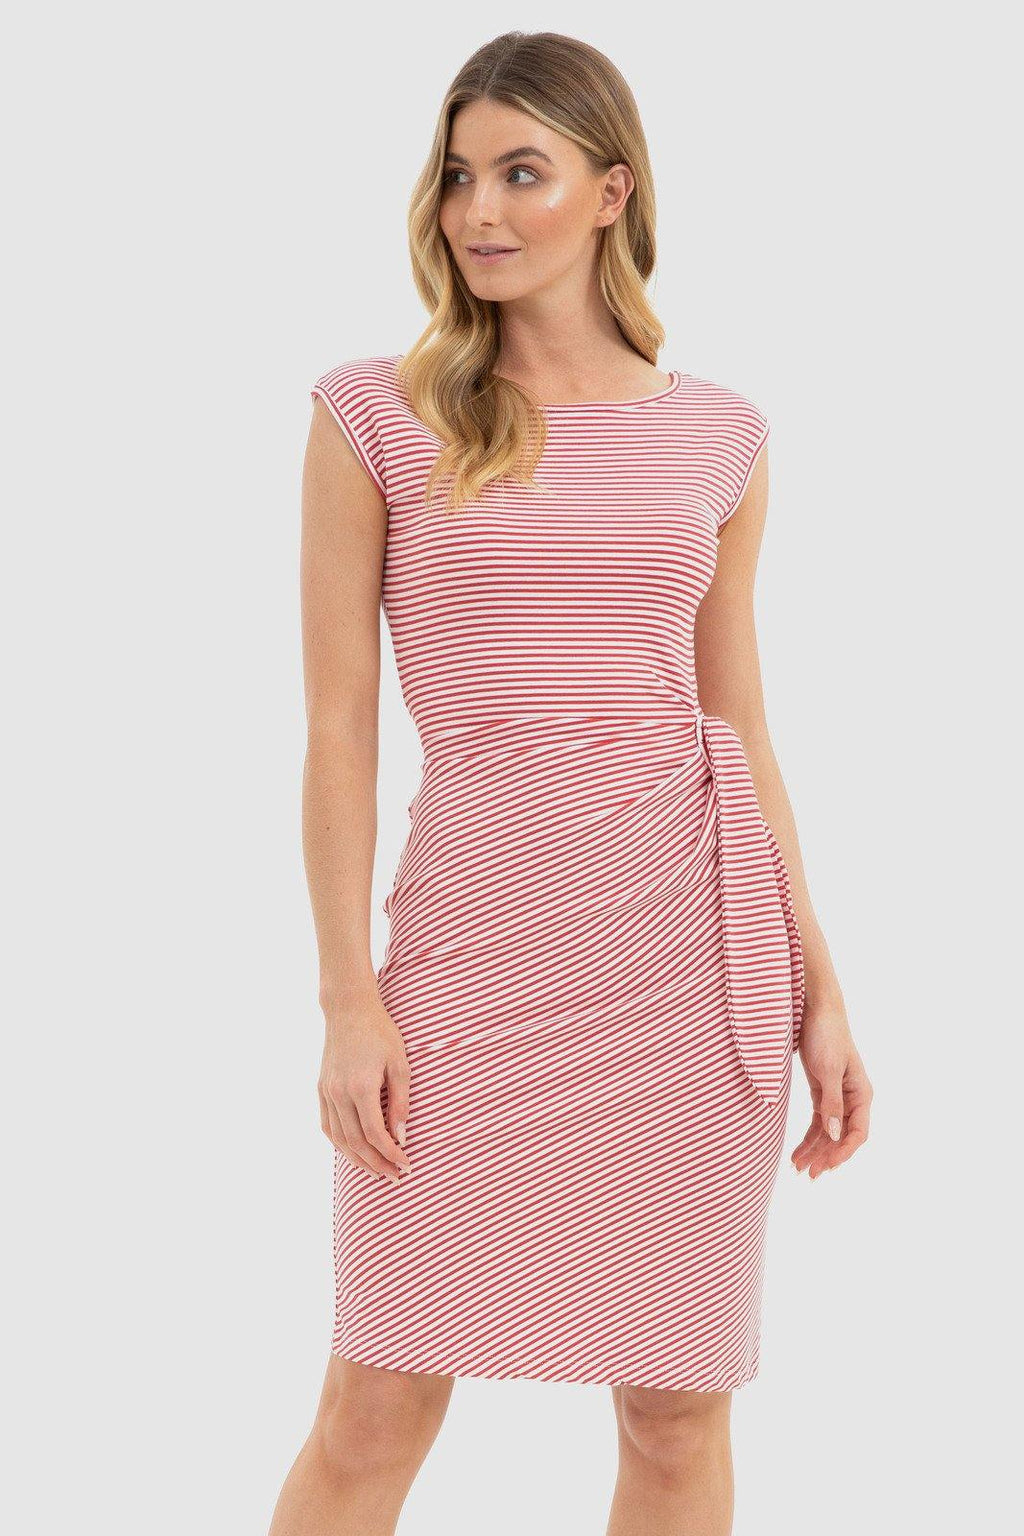 Bamboo Shell Dress - Red + White Stripe - Bamboo Body | Buy Online at Weekends